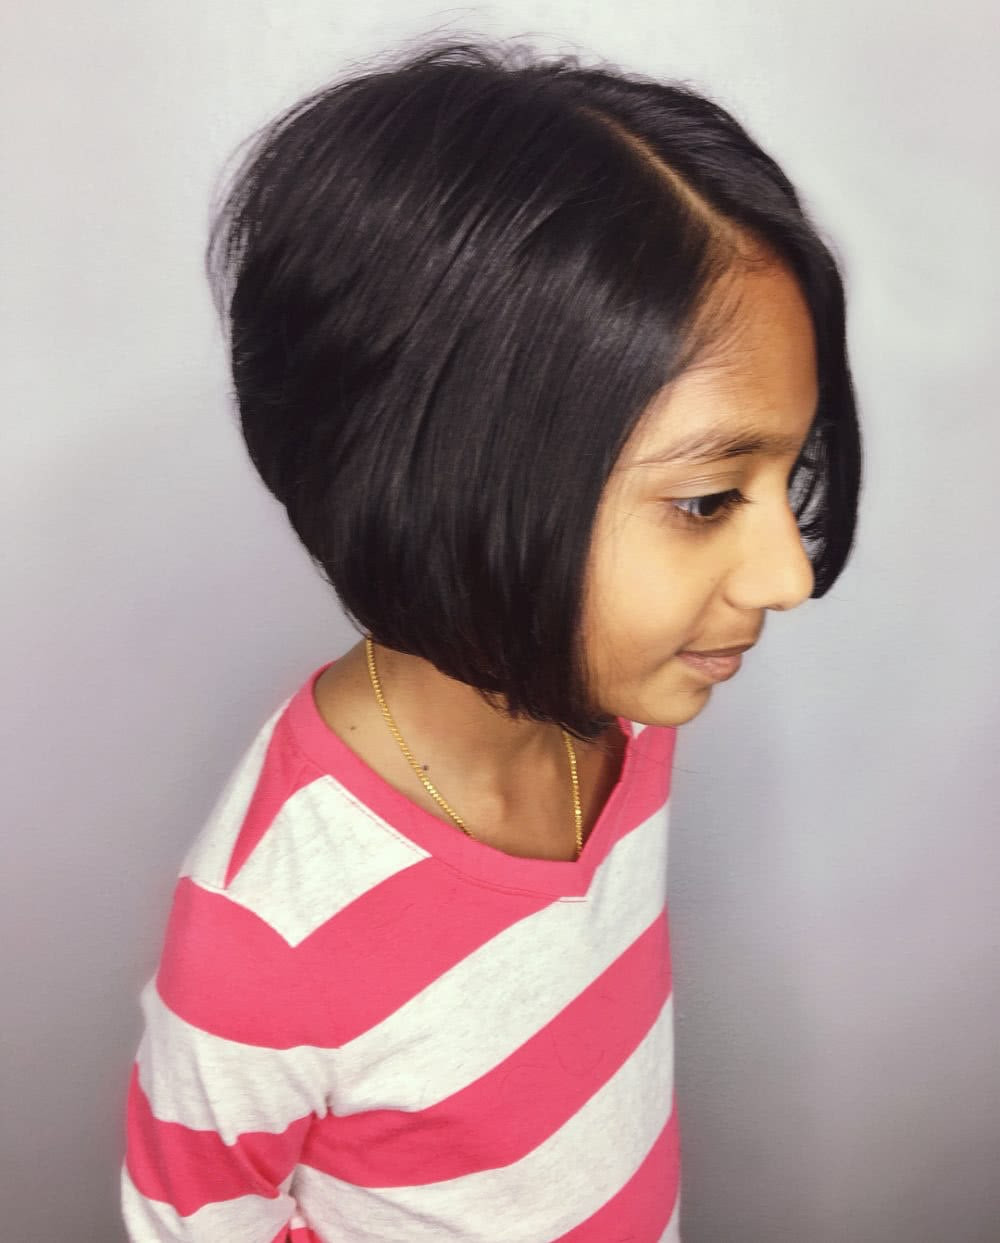 Best ideas about Girls Haircuts 2019 . Save or Pin 29 Cutest Little Girl Hairstyles for 2019 Now.